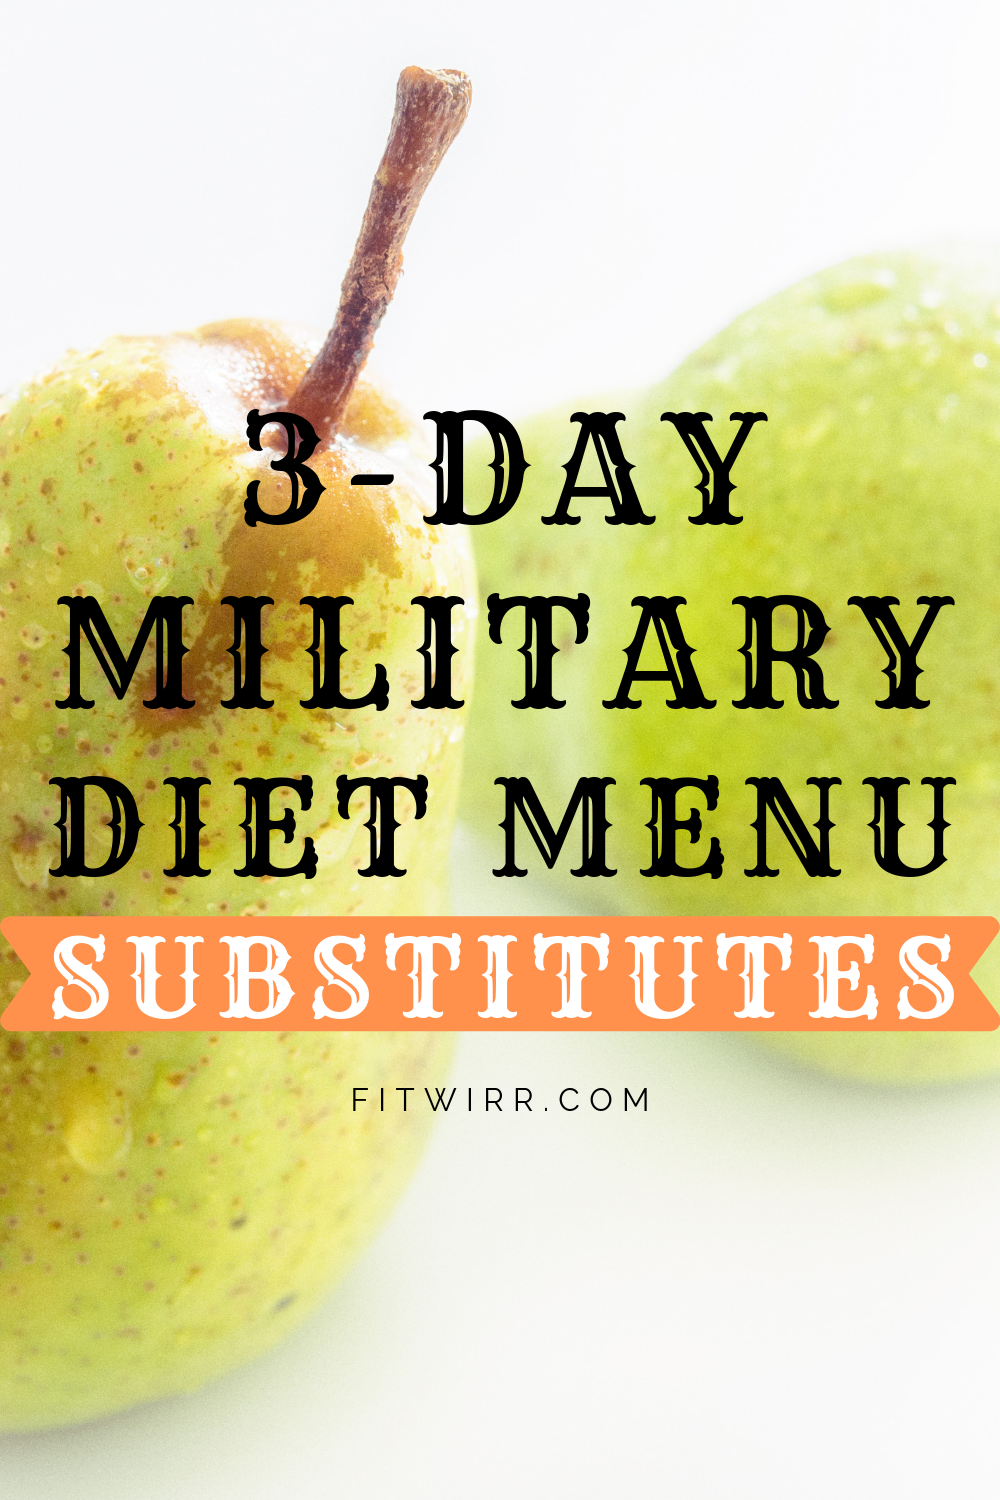 3 Day Military Diet Substitutions [Free Download] - Fitwirr